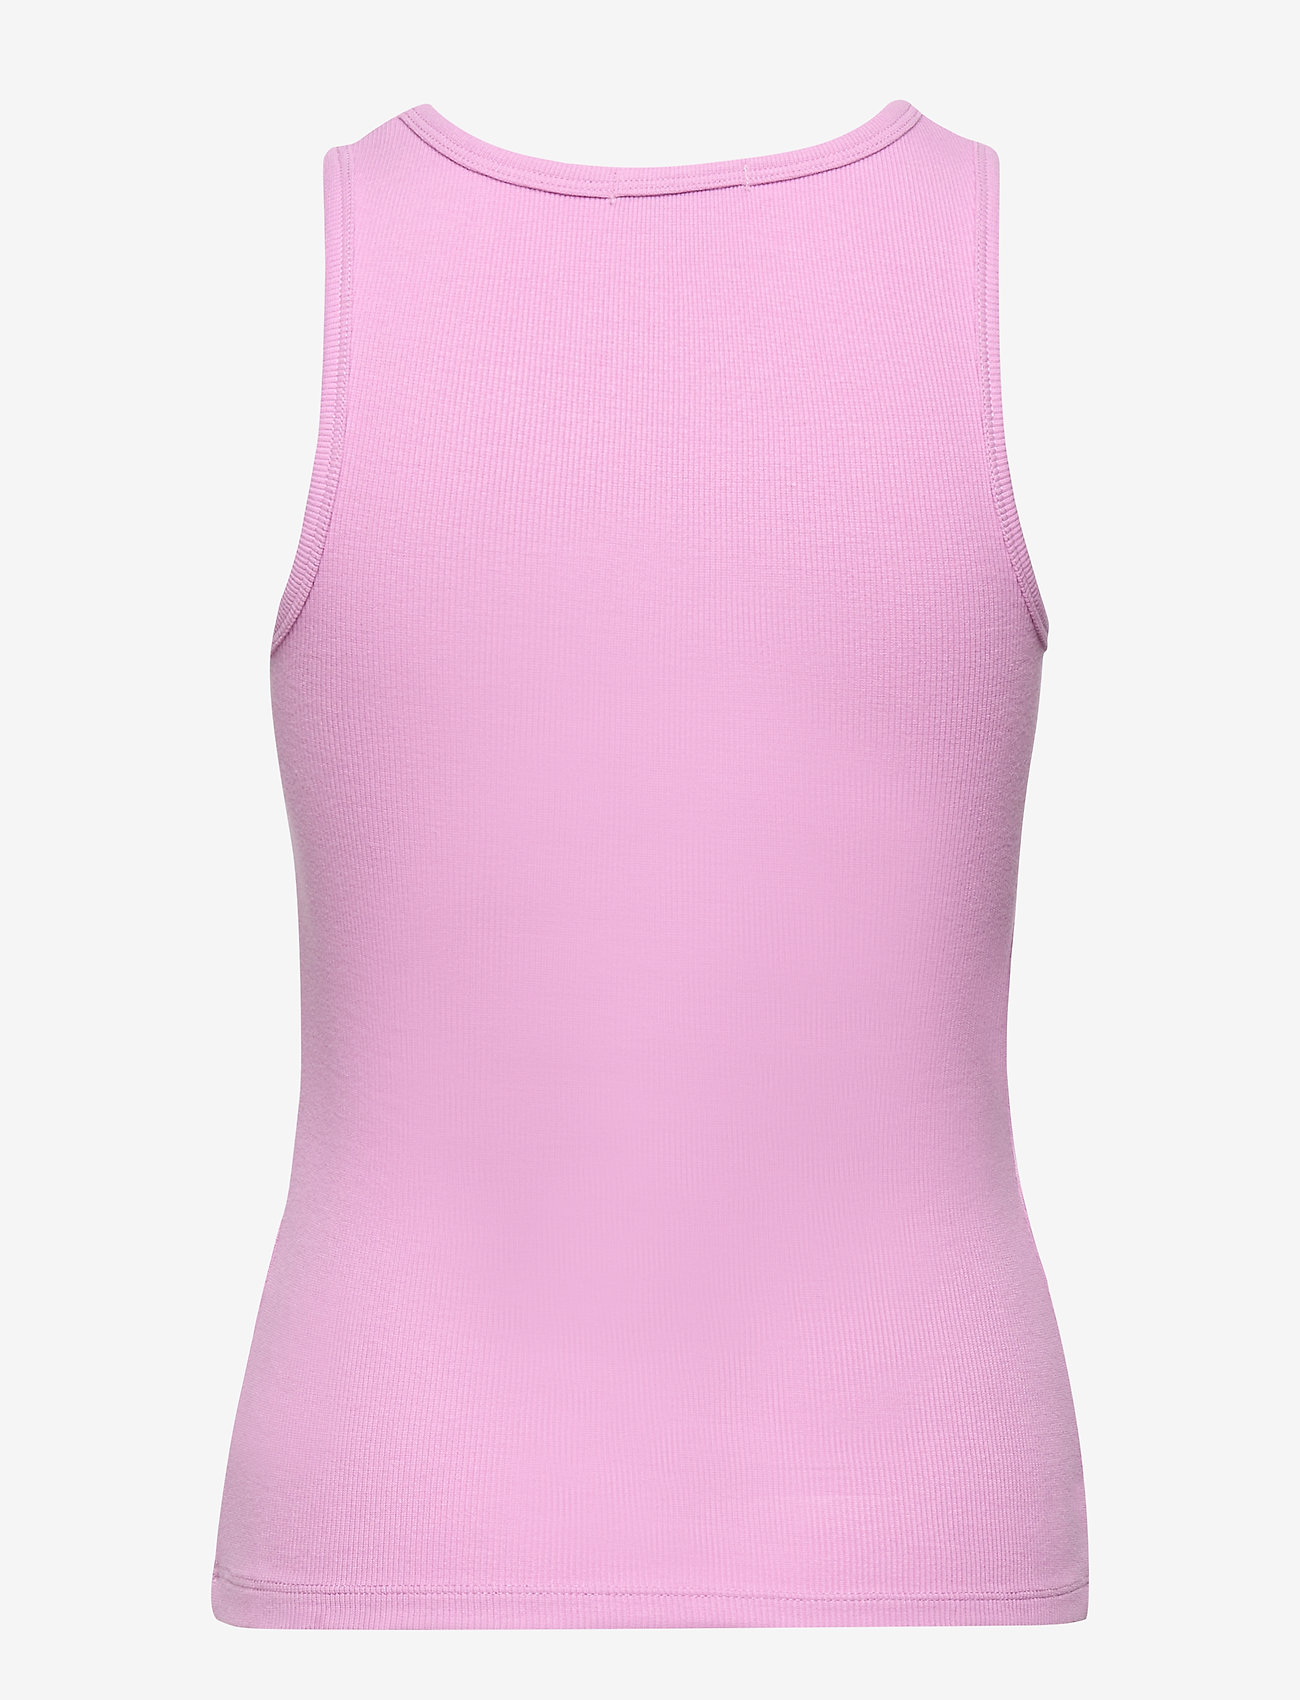 VANS - TOGETHER FOREVER TANK - sportieve tops - orchid - 1